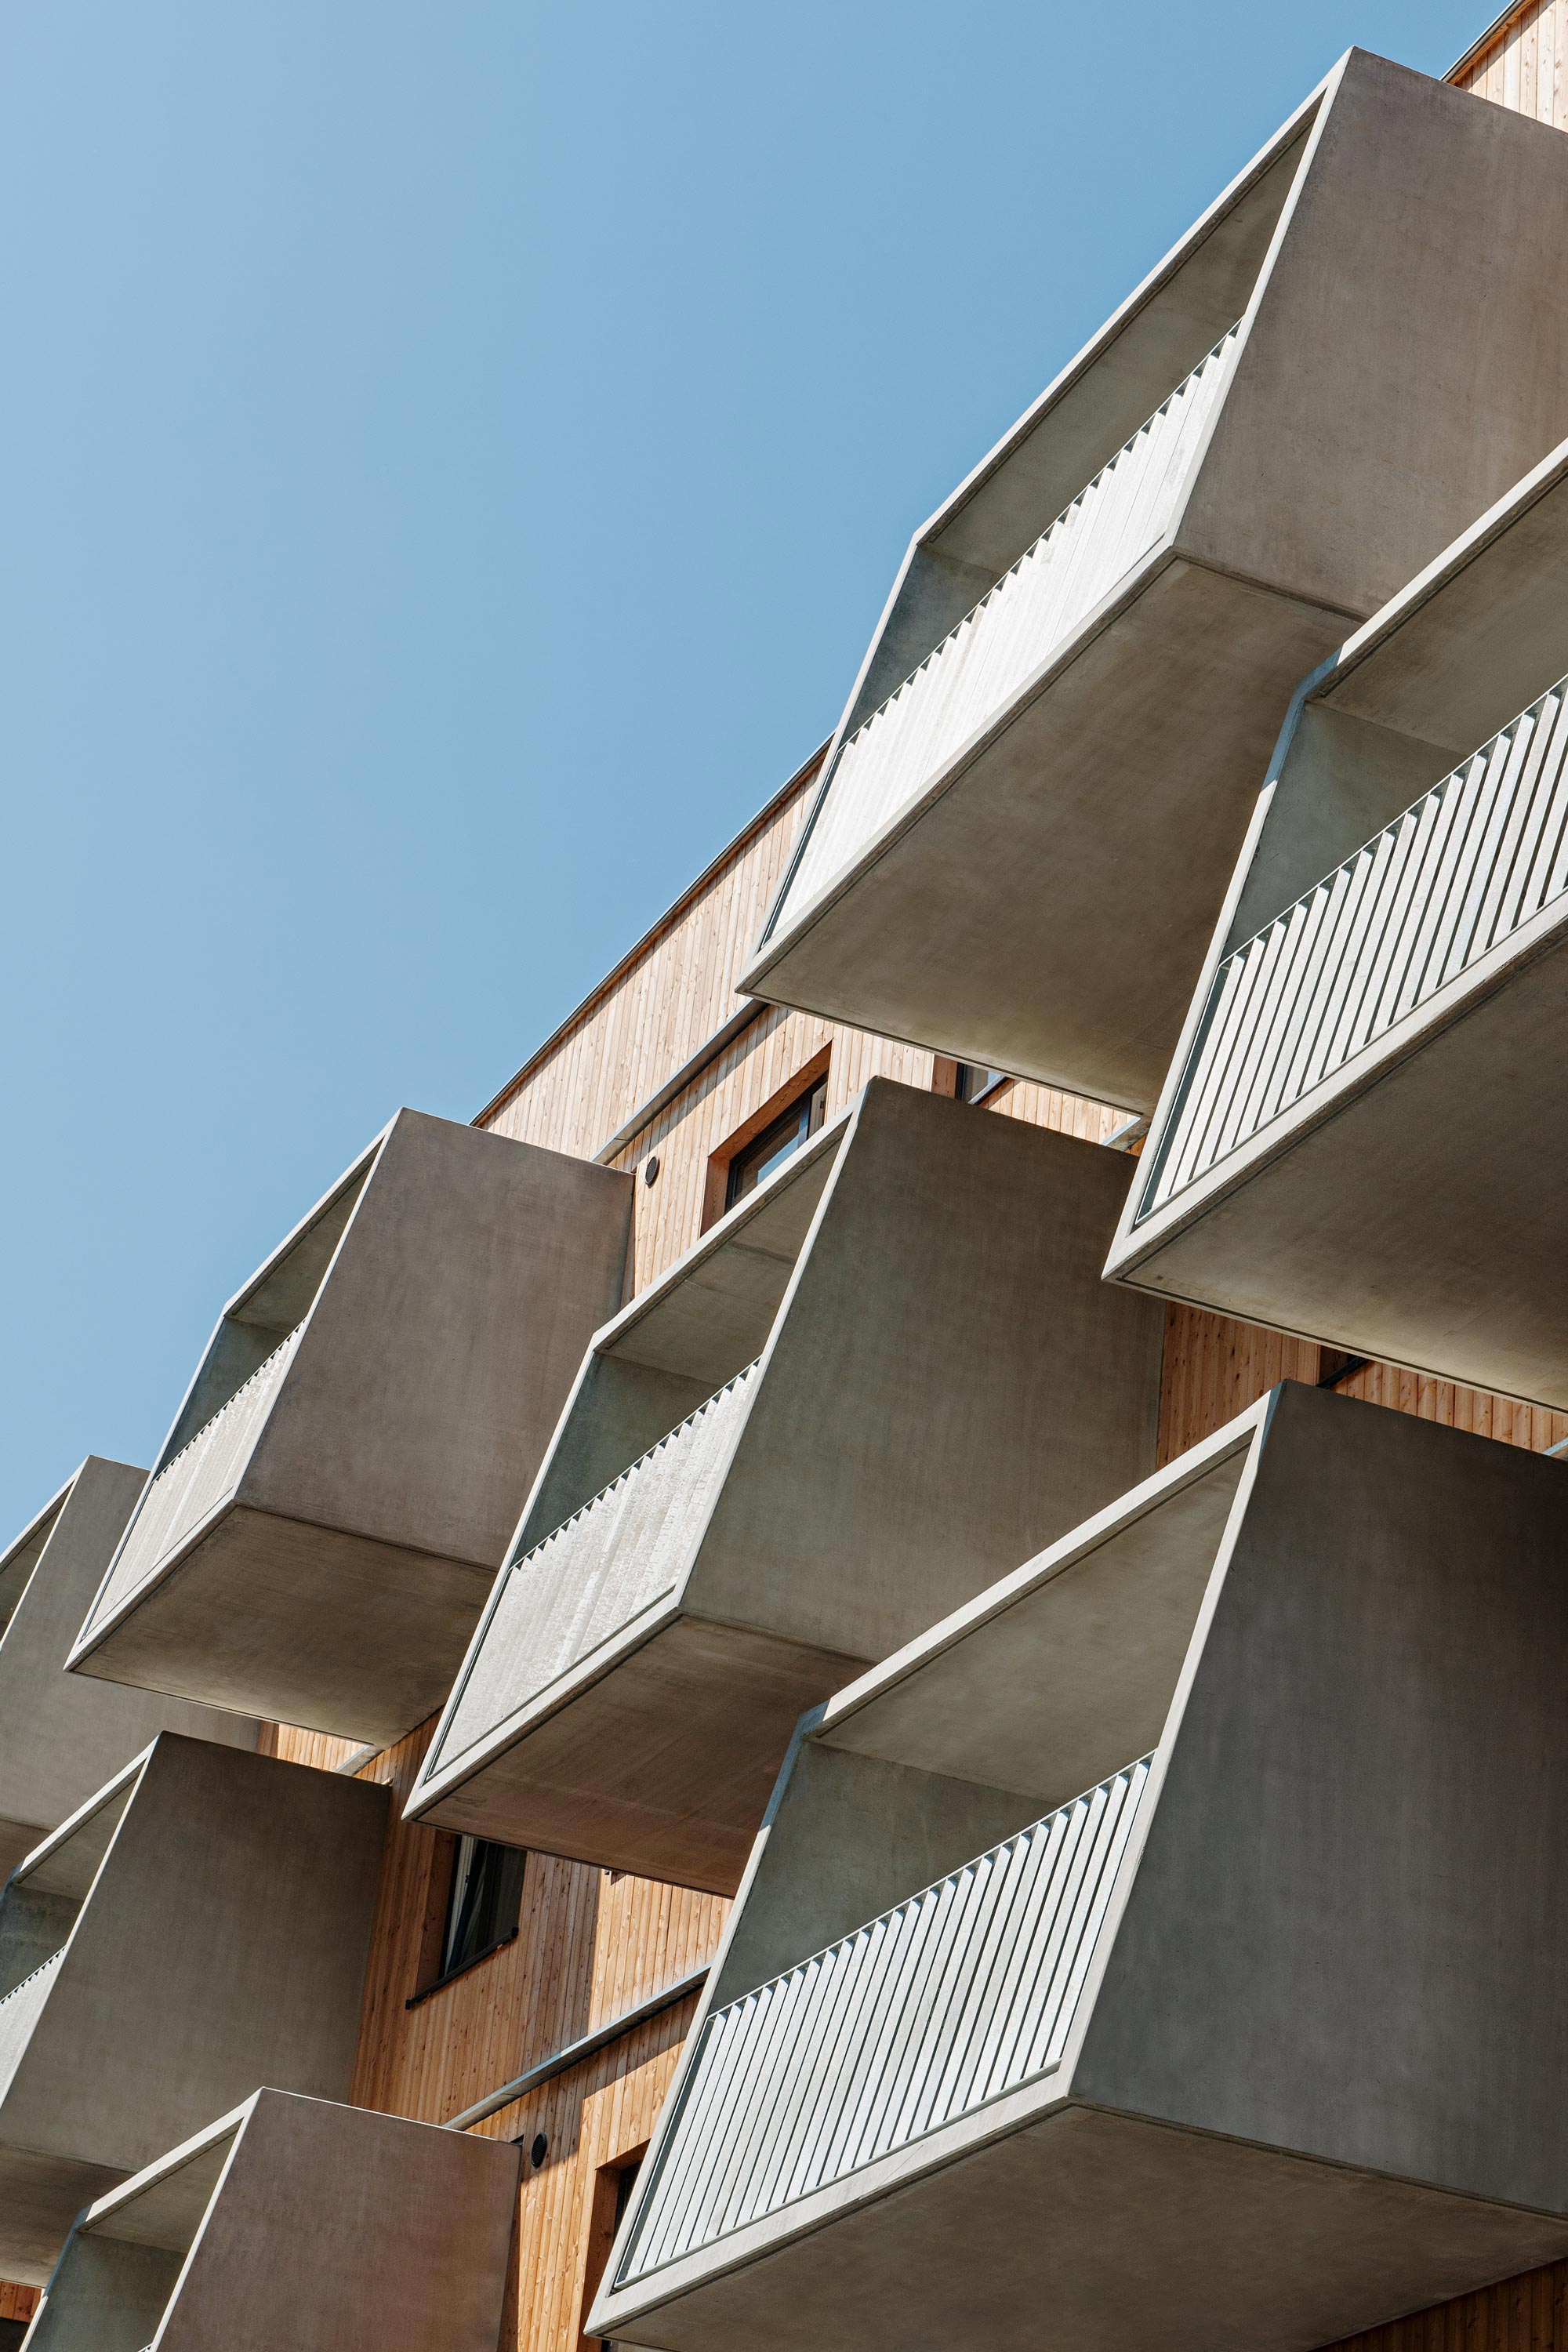 Wood Housing Seestadt Aspern, facade detail. Photo: Hertha Hurnaus | Berger+Parkkinen Architekten | querkraft